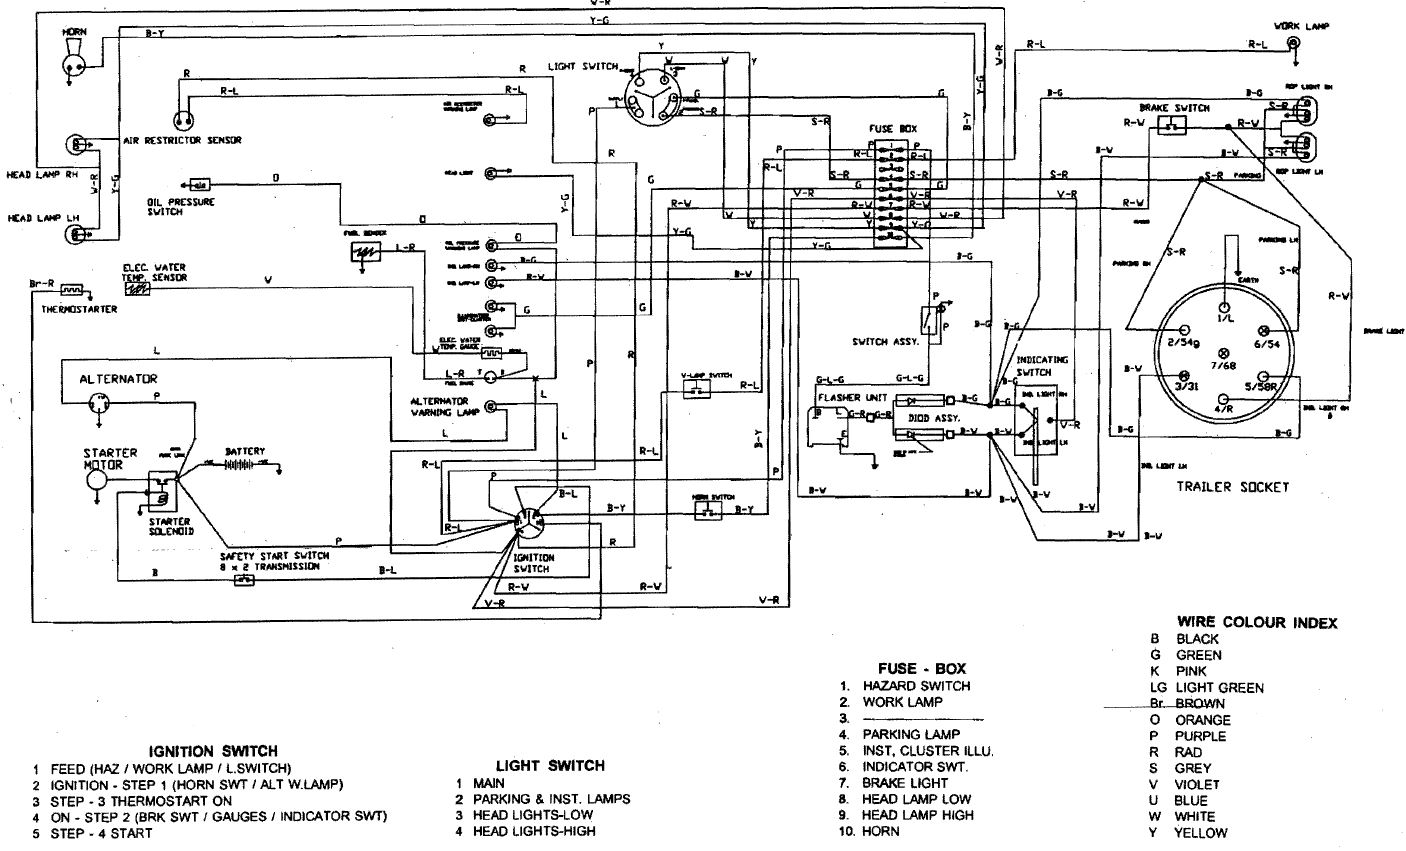 hight resolution of wrg 7069 f525 wiring diagram wiring diagram in addition john deere tractor voltage regulator wiring